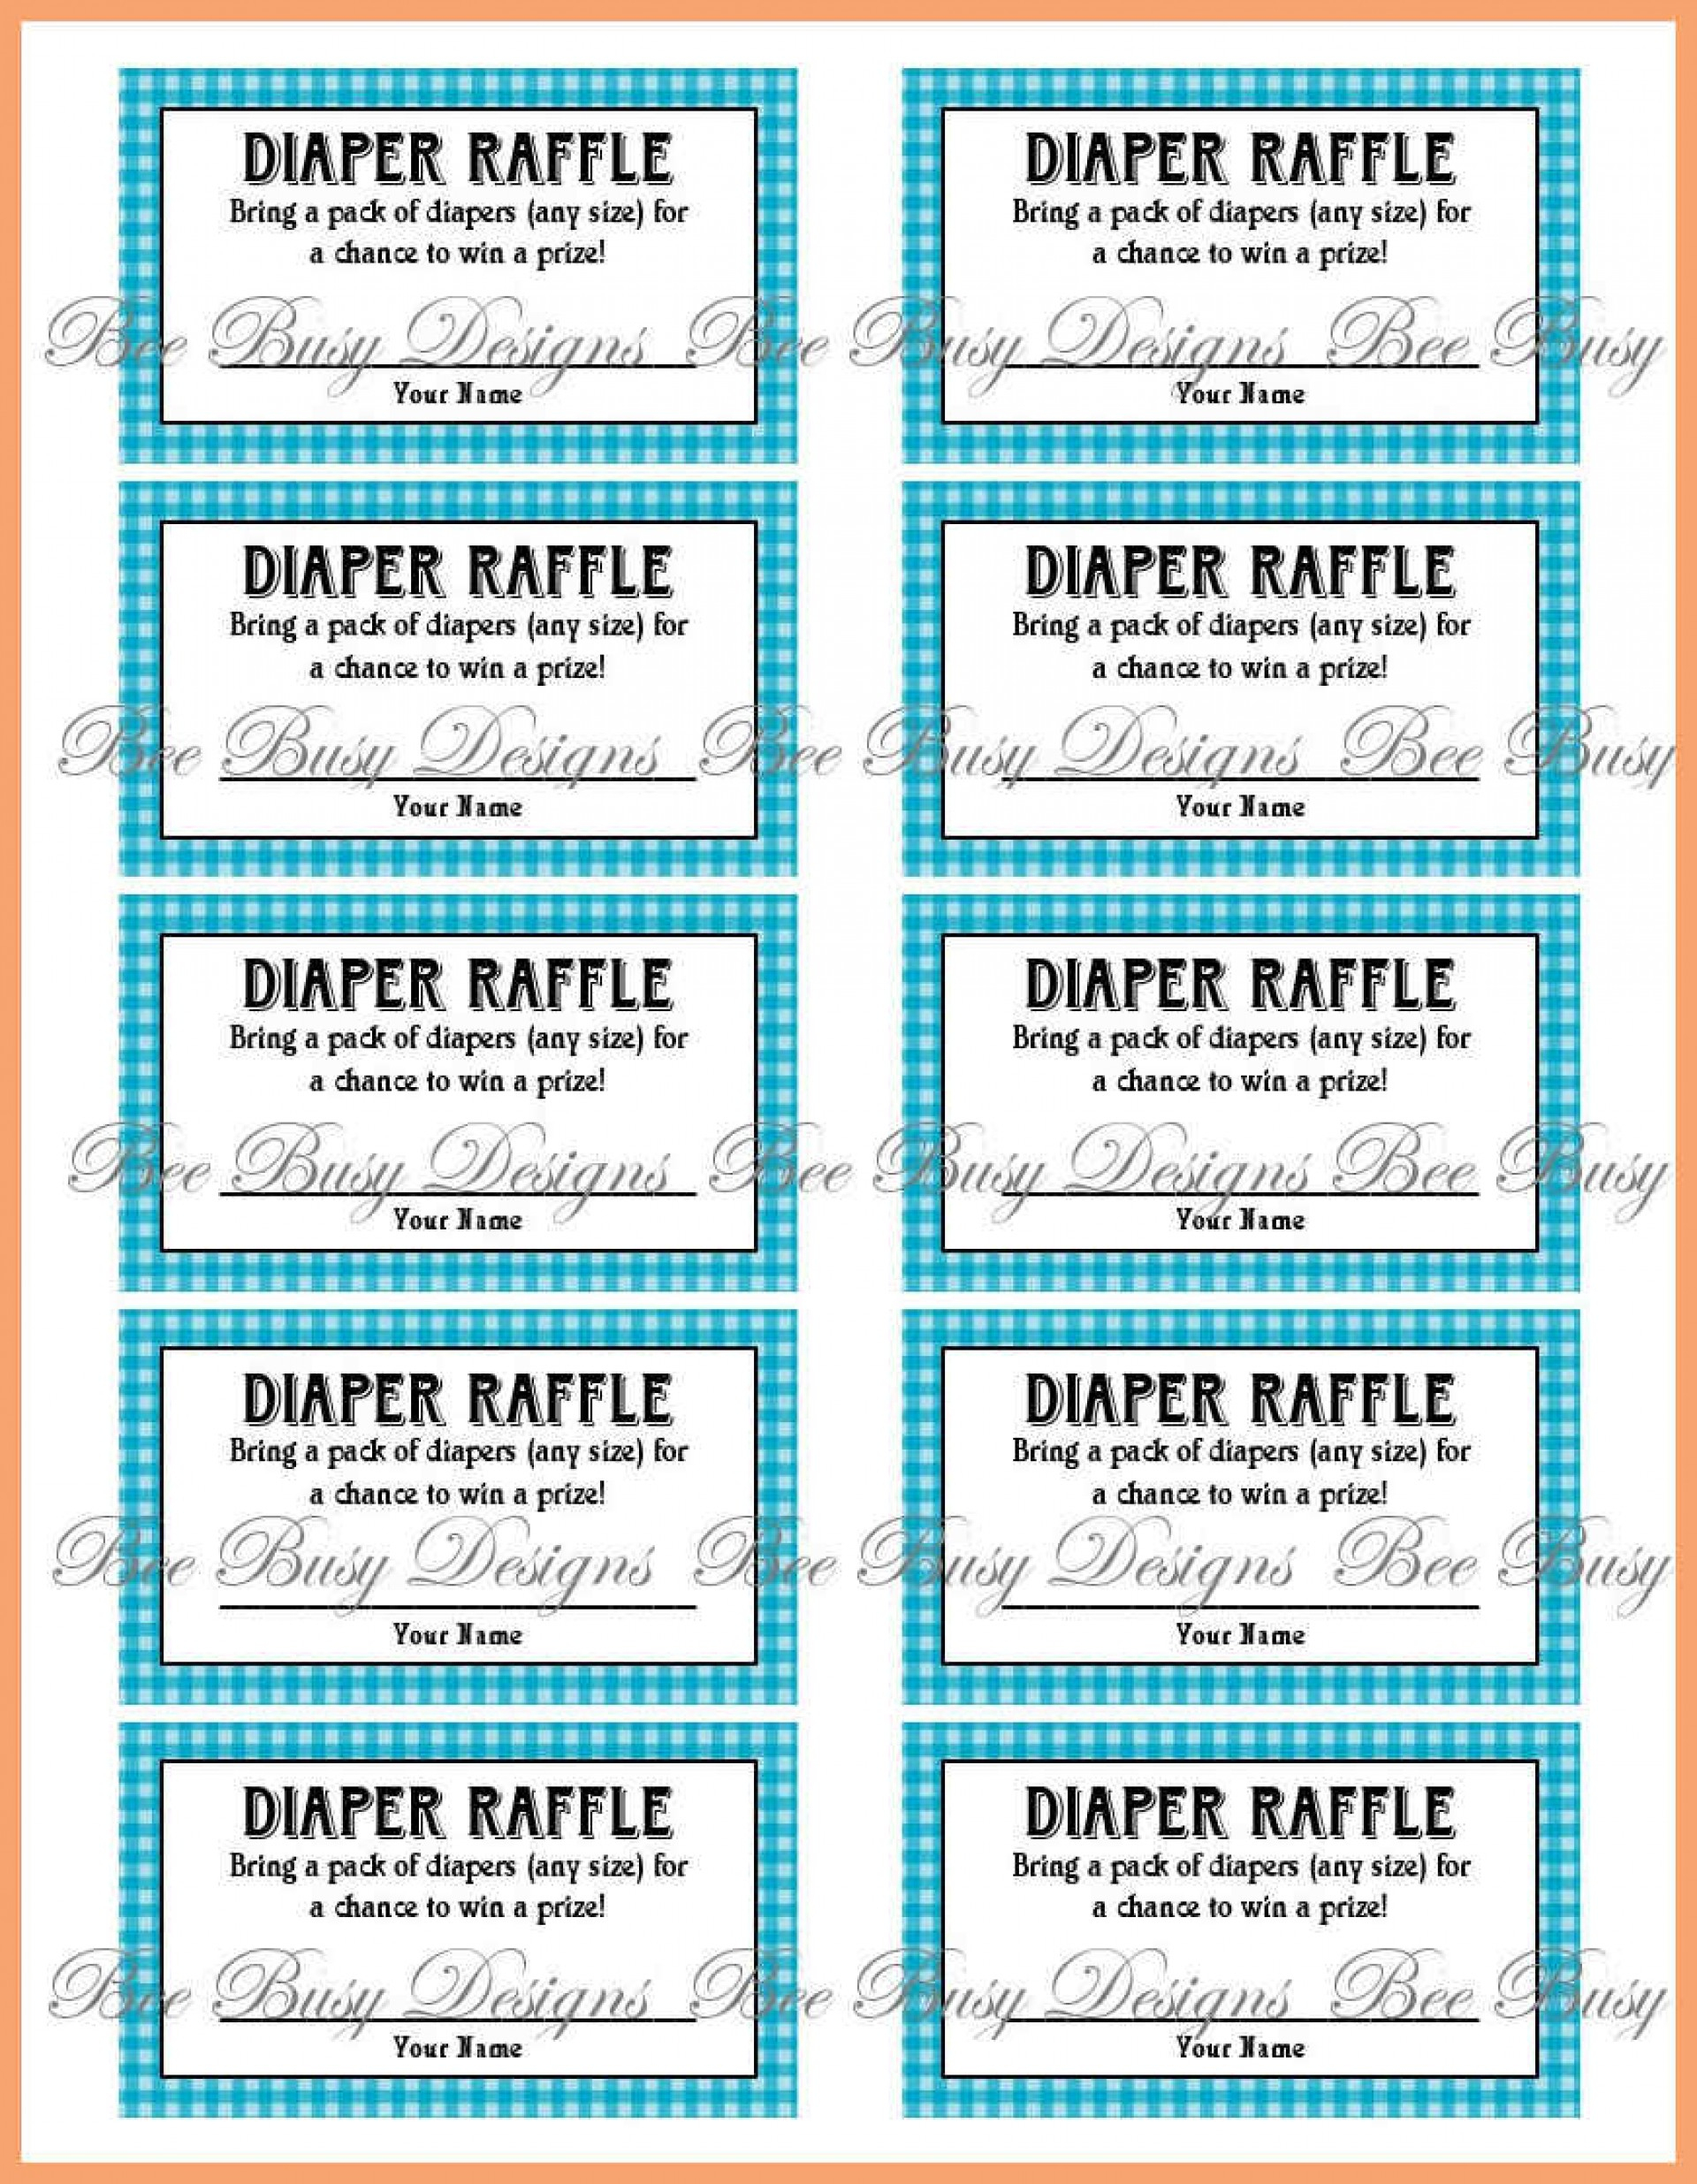 012 Free Printable Ticket Template Elegant For Event Of ~ Ulyssesroom - Diaper Raffle Template Free Printable